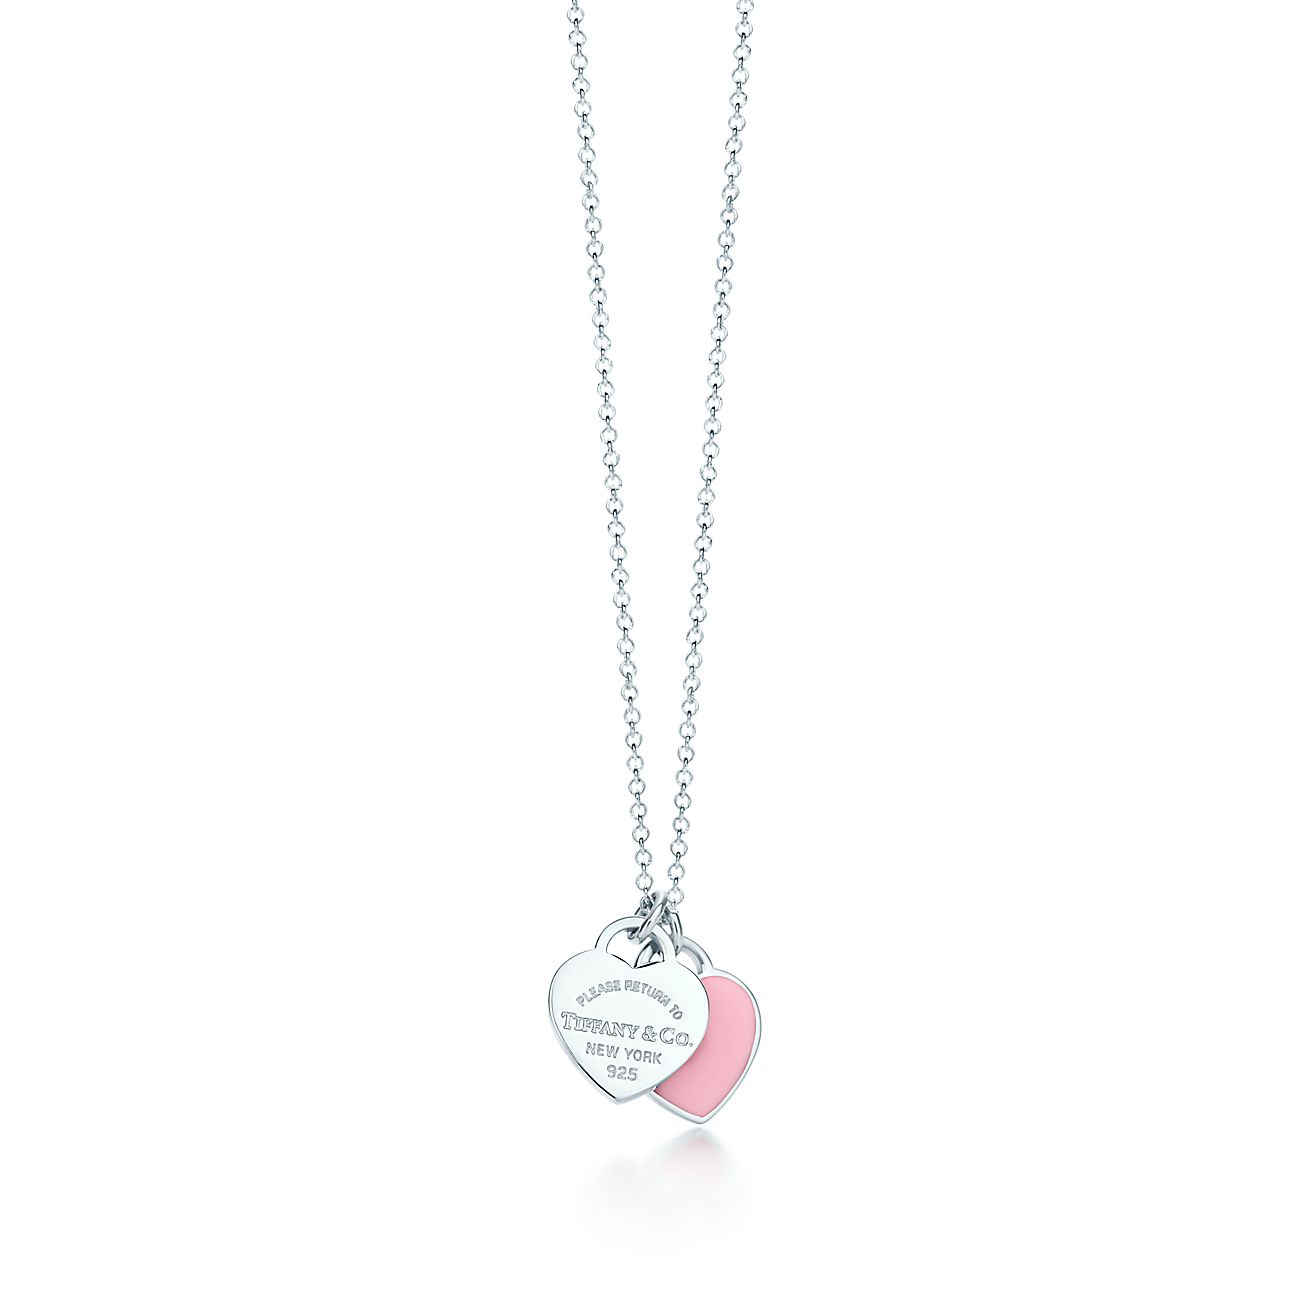 g gold necklace doubleheart your hearts plated products heart dreams pendant double interlocking in with n dainty iydc